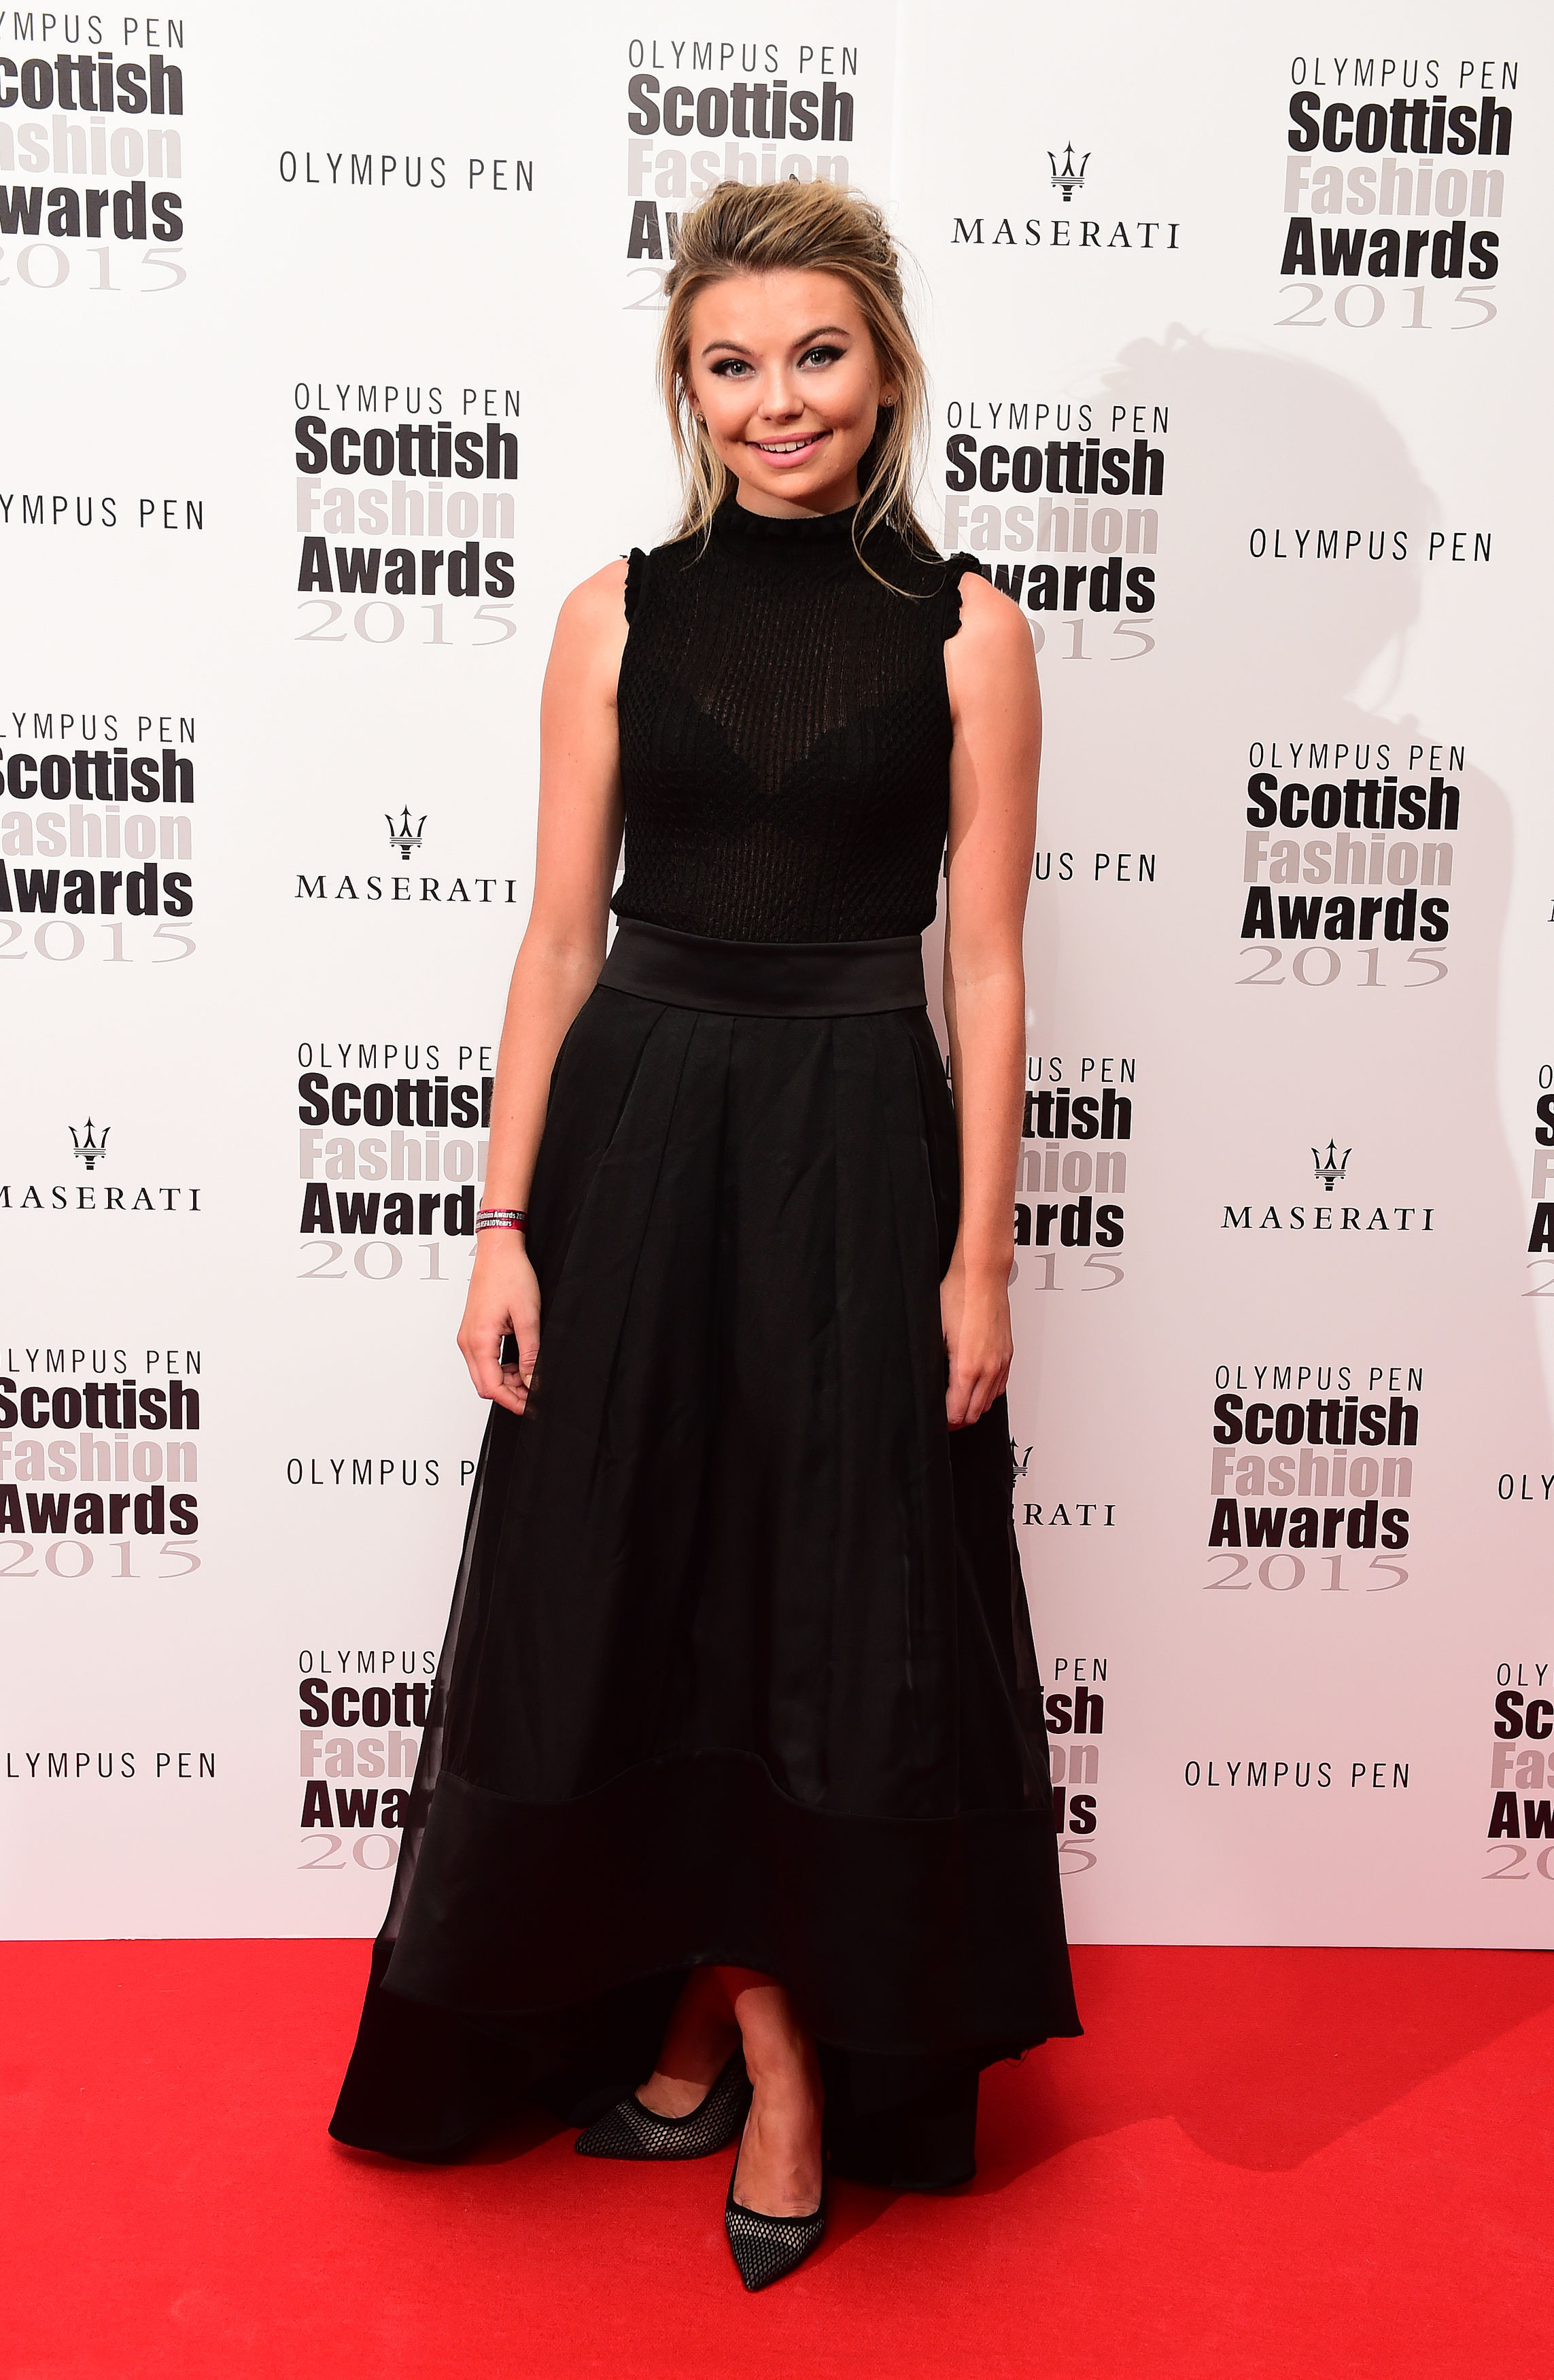 Georgia Toffolo attending the Scottish Fashion Awards at the Corinthia Hotel, London.